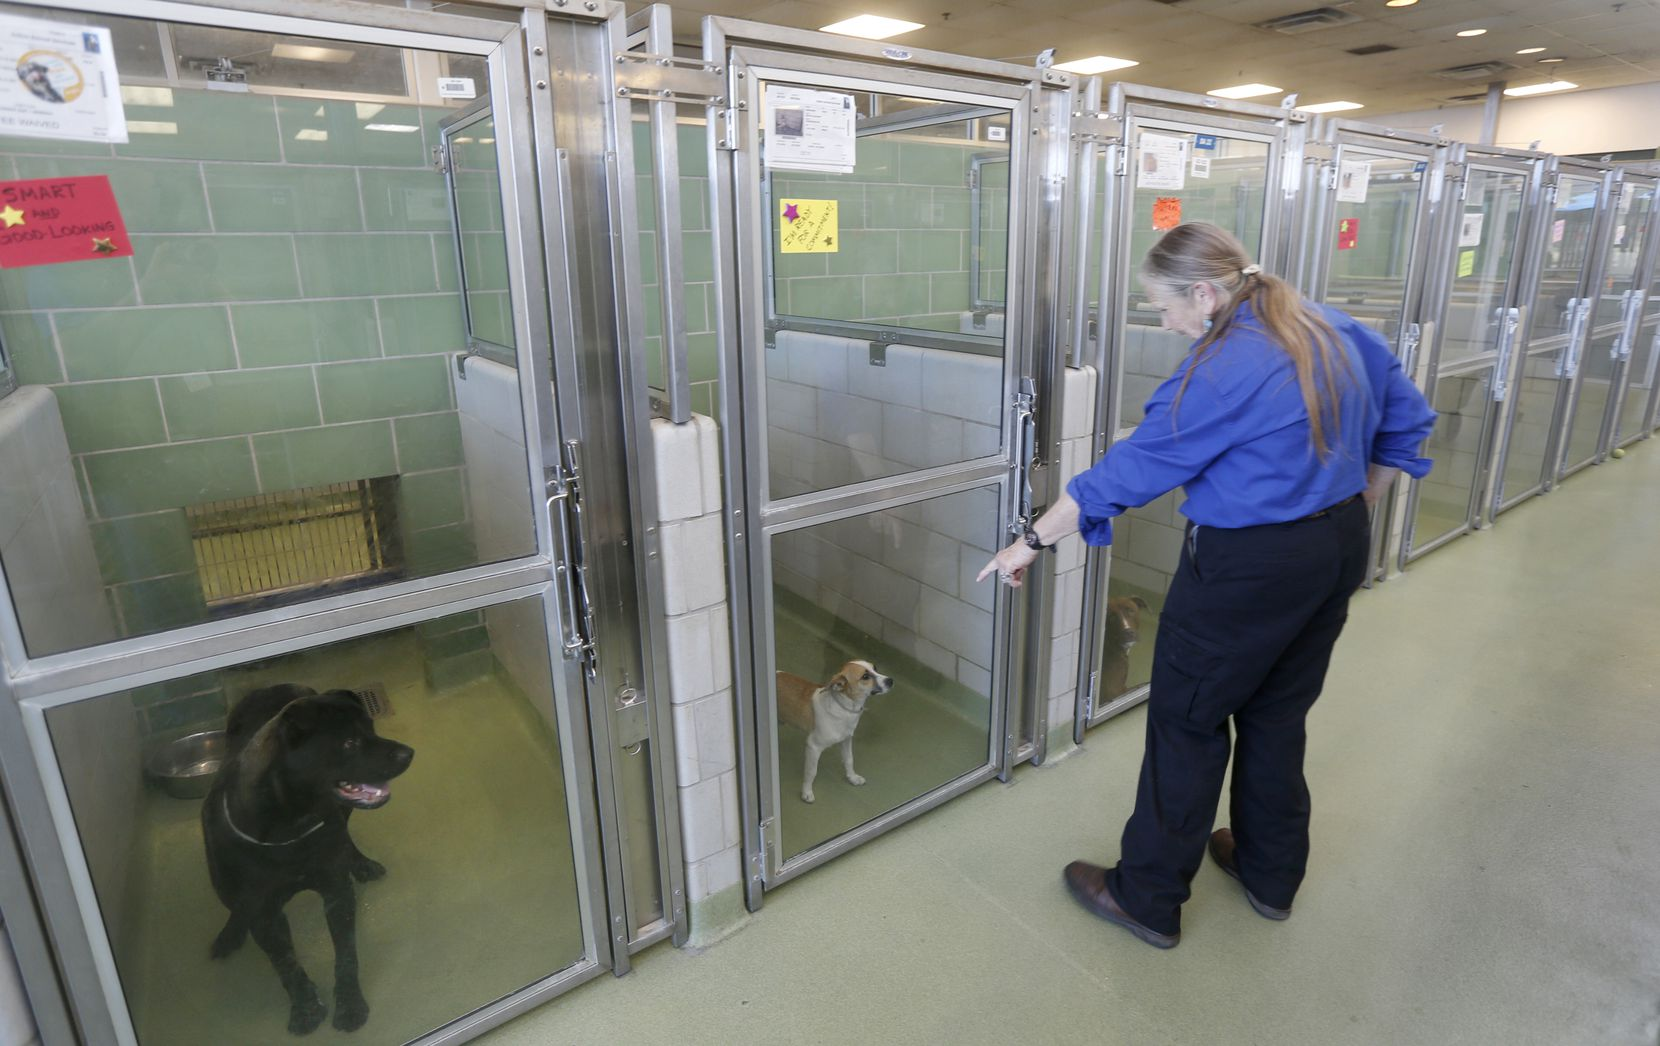 Employee Cheryl Sommerfield tends to dogs at Dallas Animal Services.